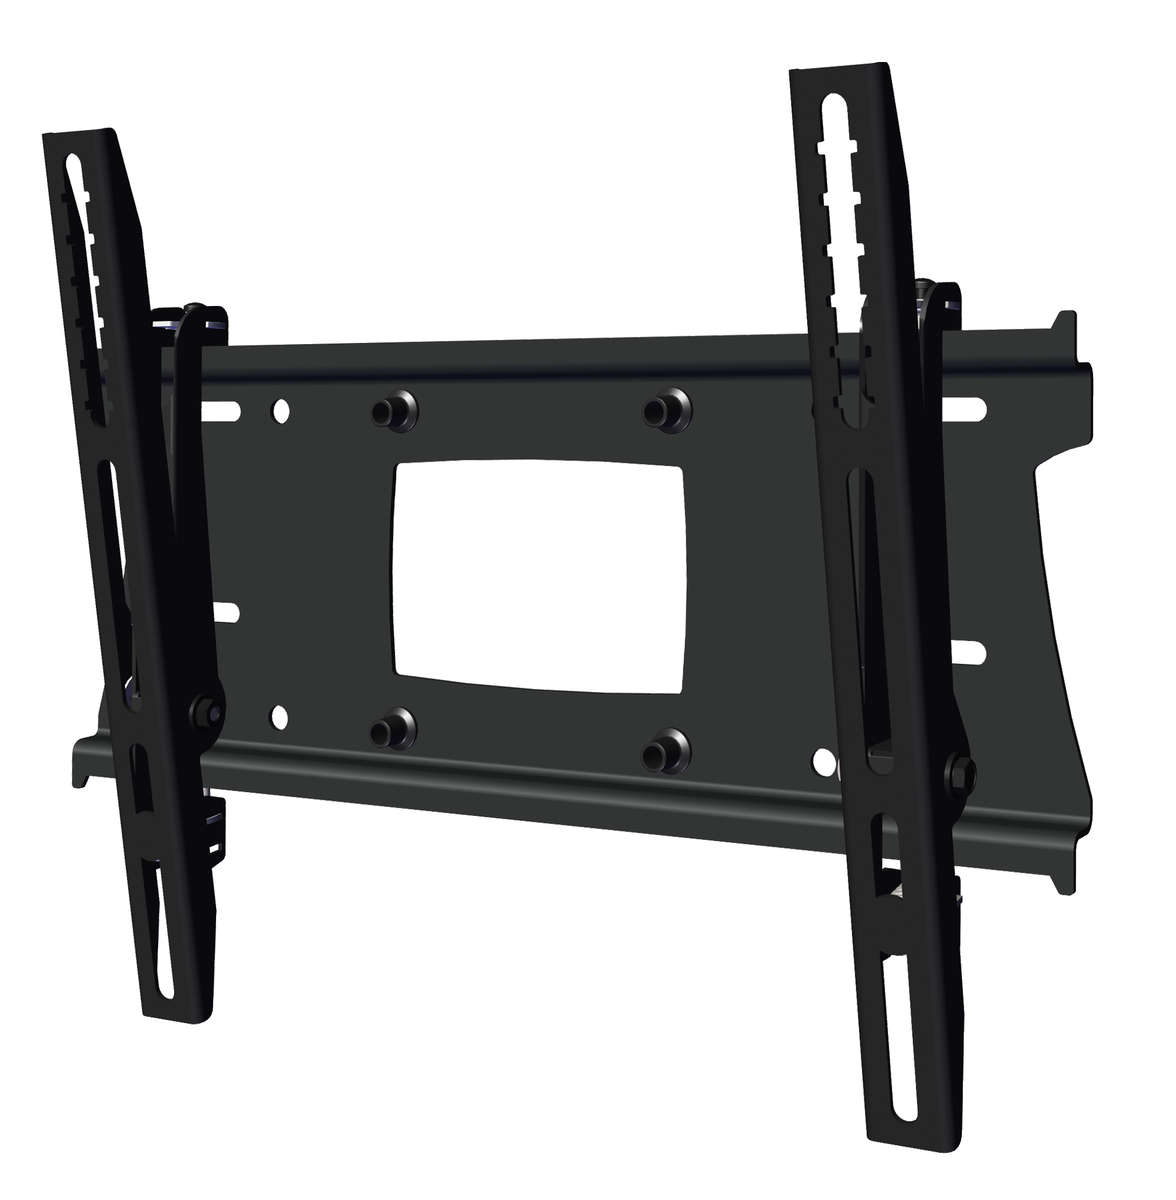 Unicol PZW3 Pozimount tilting wall bracket for monitors and TVs from 42 to 57 inches product image